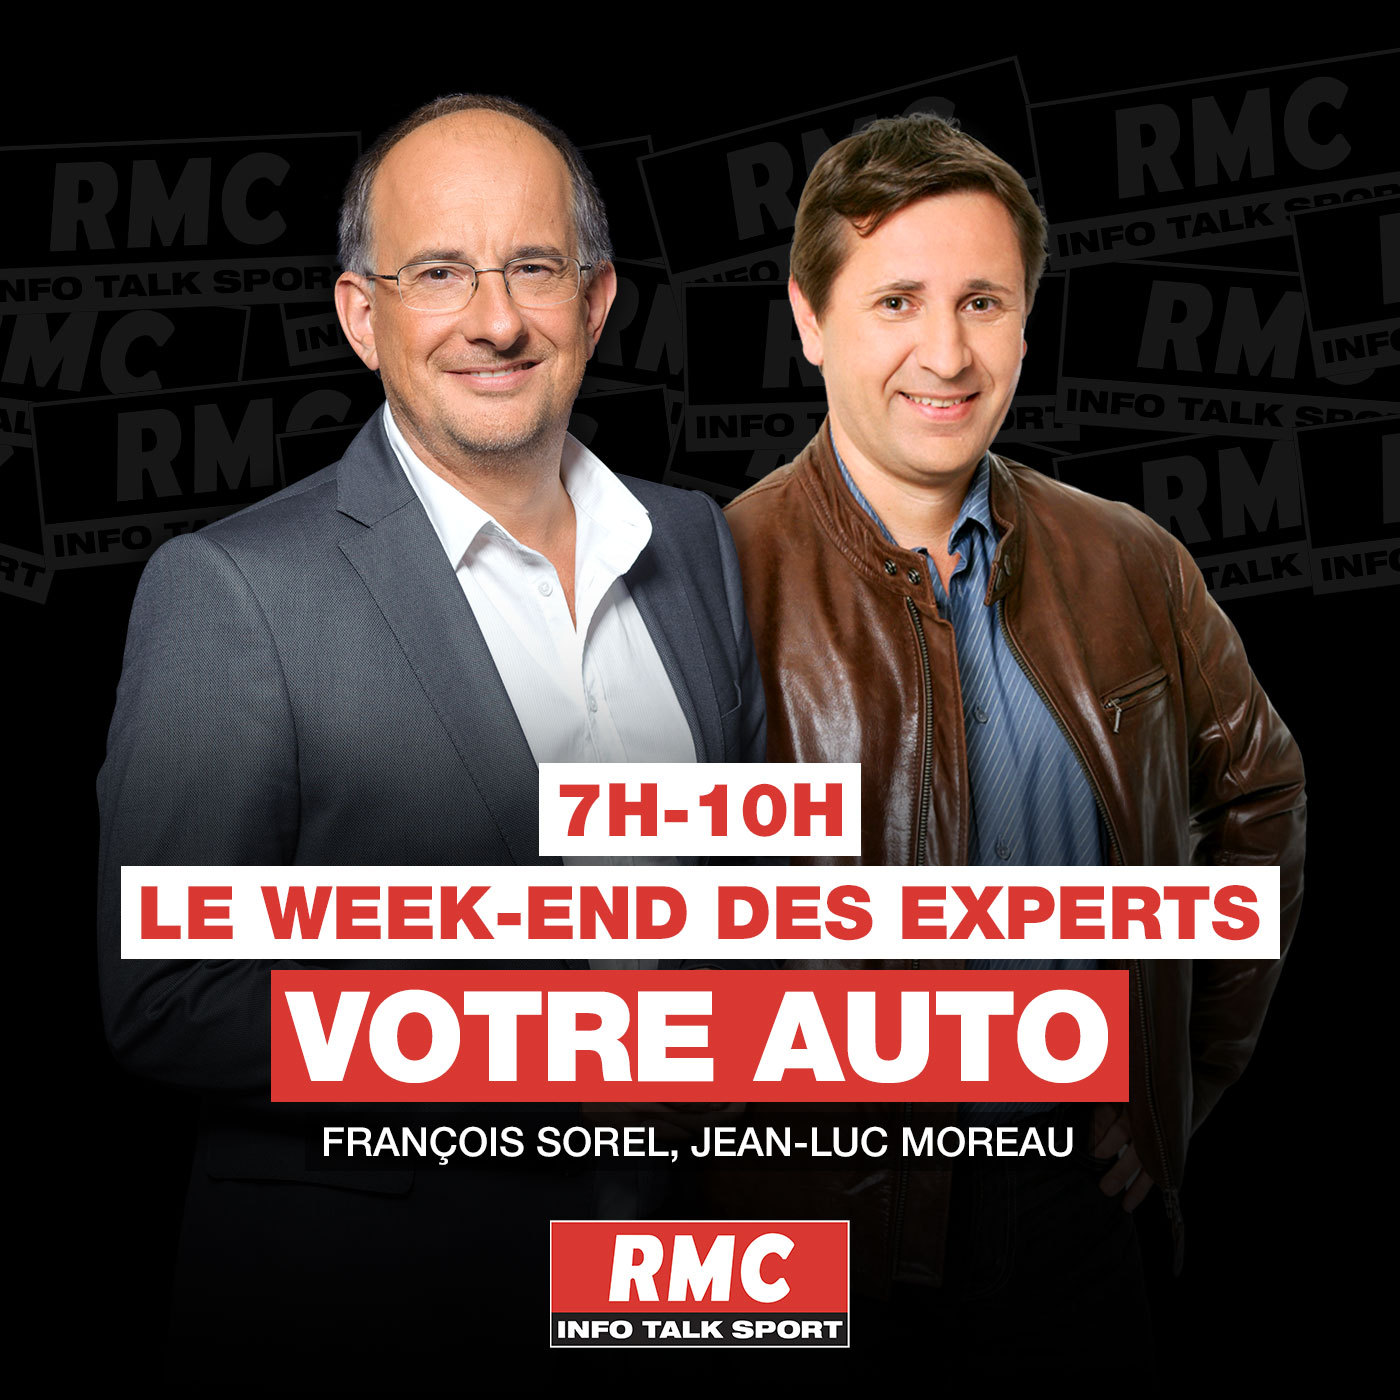 Image 1: Le weekend des experts Votre auto